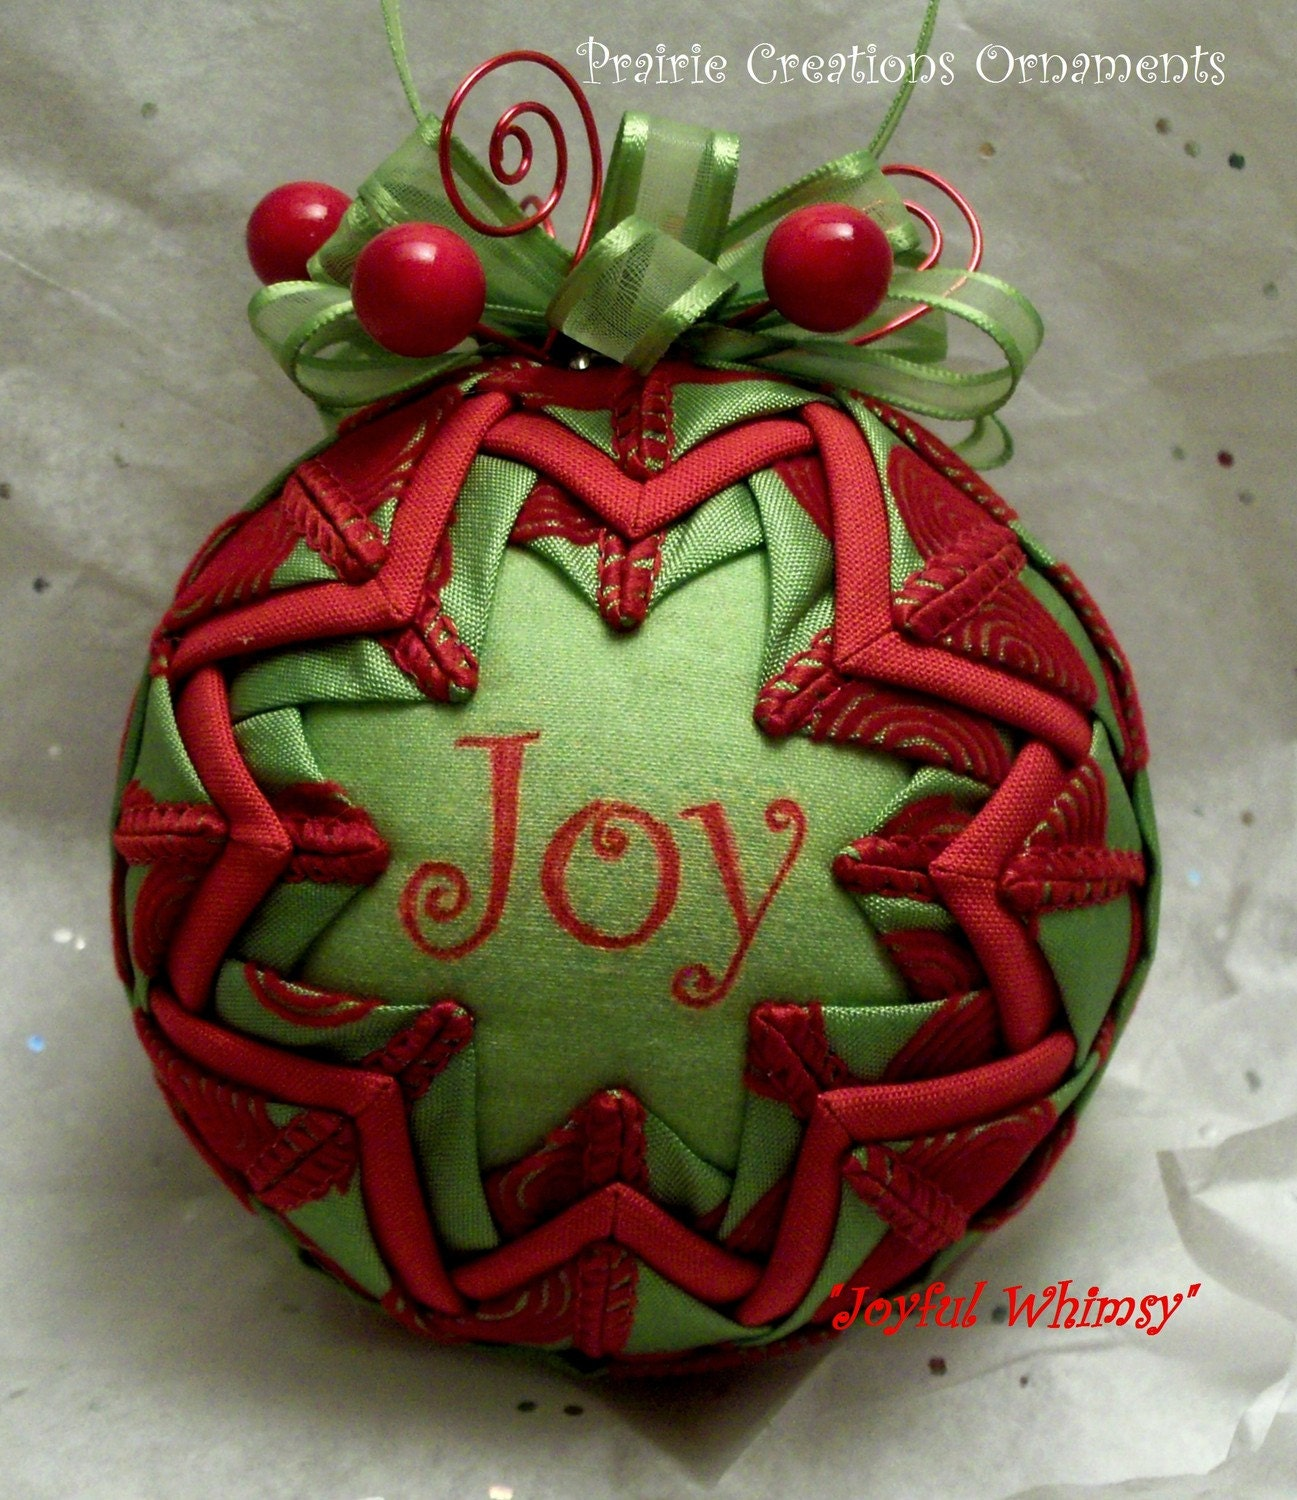 Military Ball Decorations: Lime Green And Red Swirls Quilted Christmas Ornament Joyful